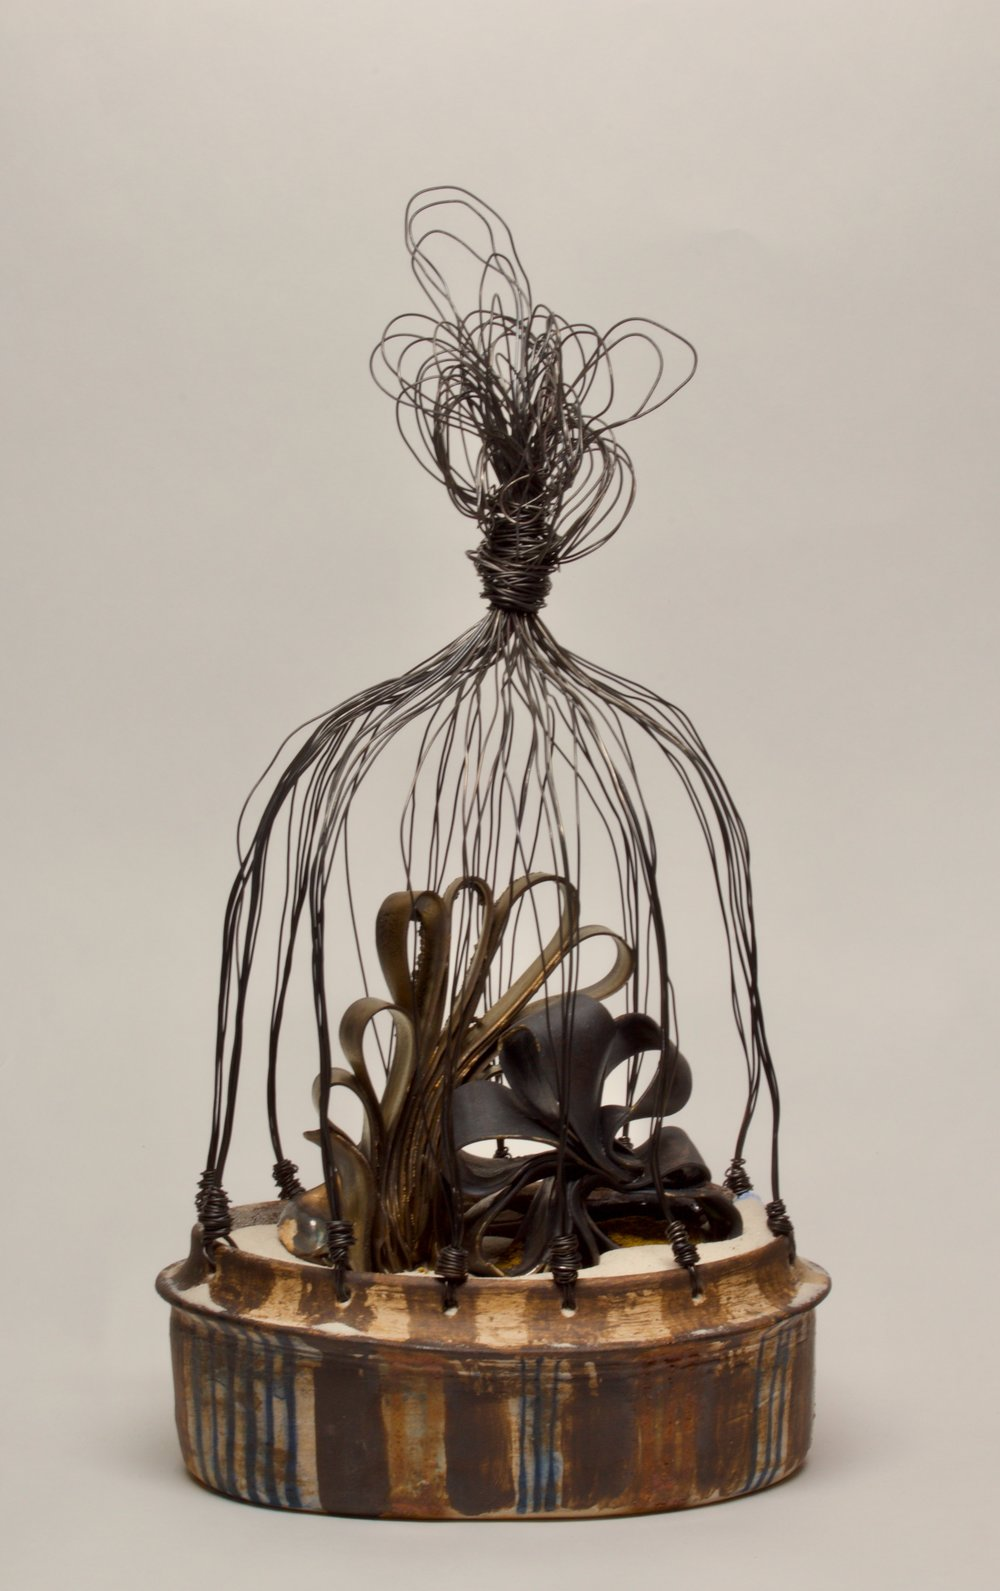 "'the prayer to and word from God, when Isabella Baumfree changec her name' (c. 1979 - 1883), Stoneware, Porcelain Paper Clay, Silica Sand, Wire, 14"" x 7.5"" x 4.5"", 2018"